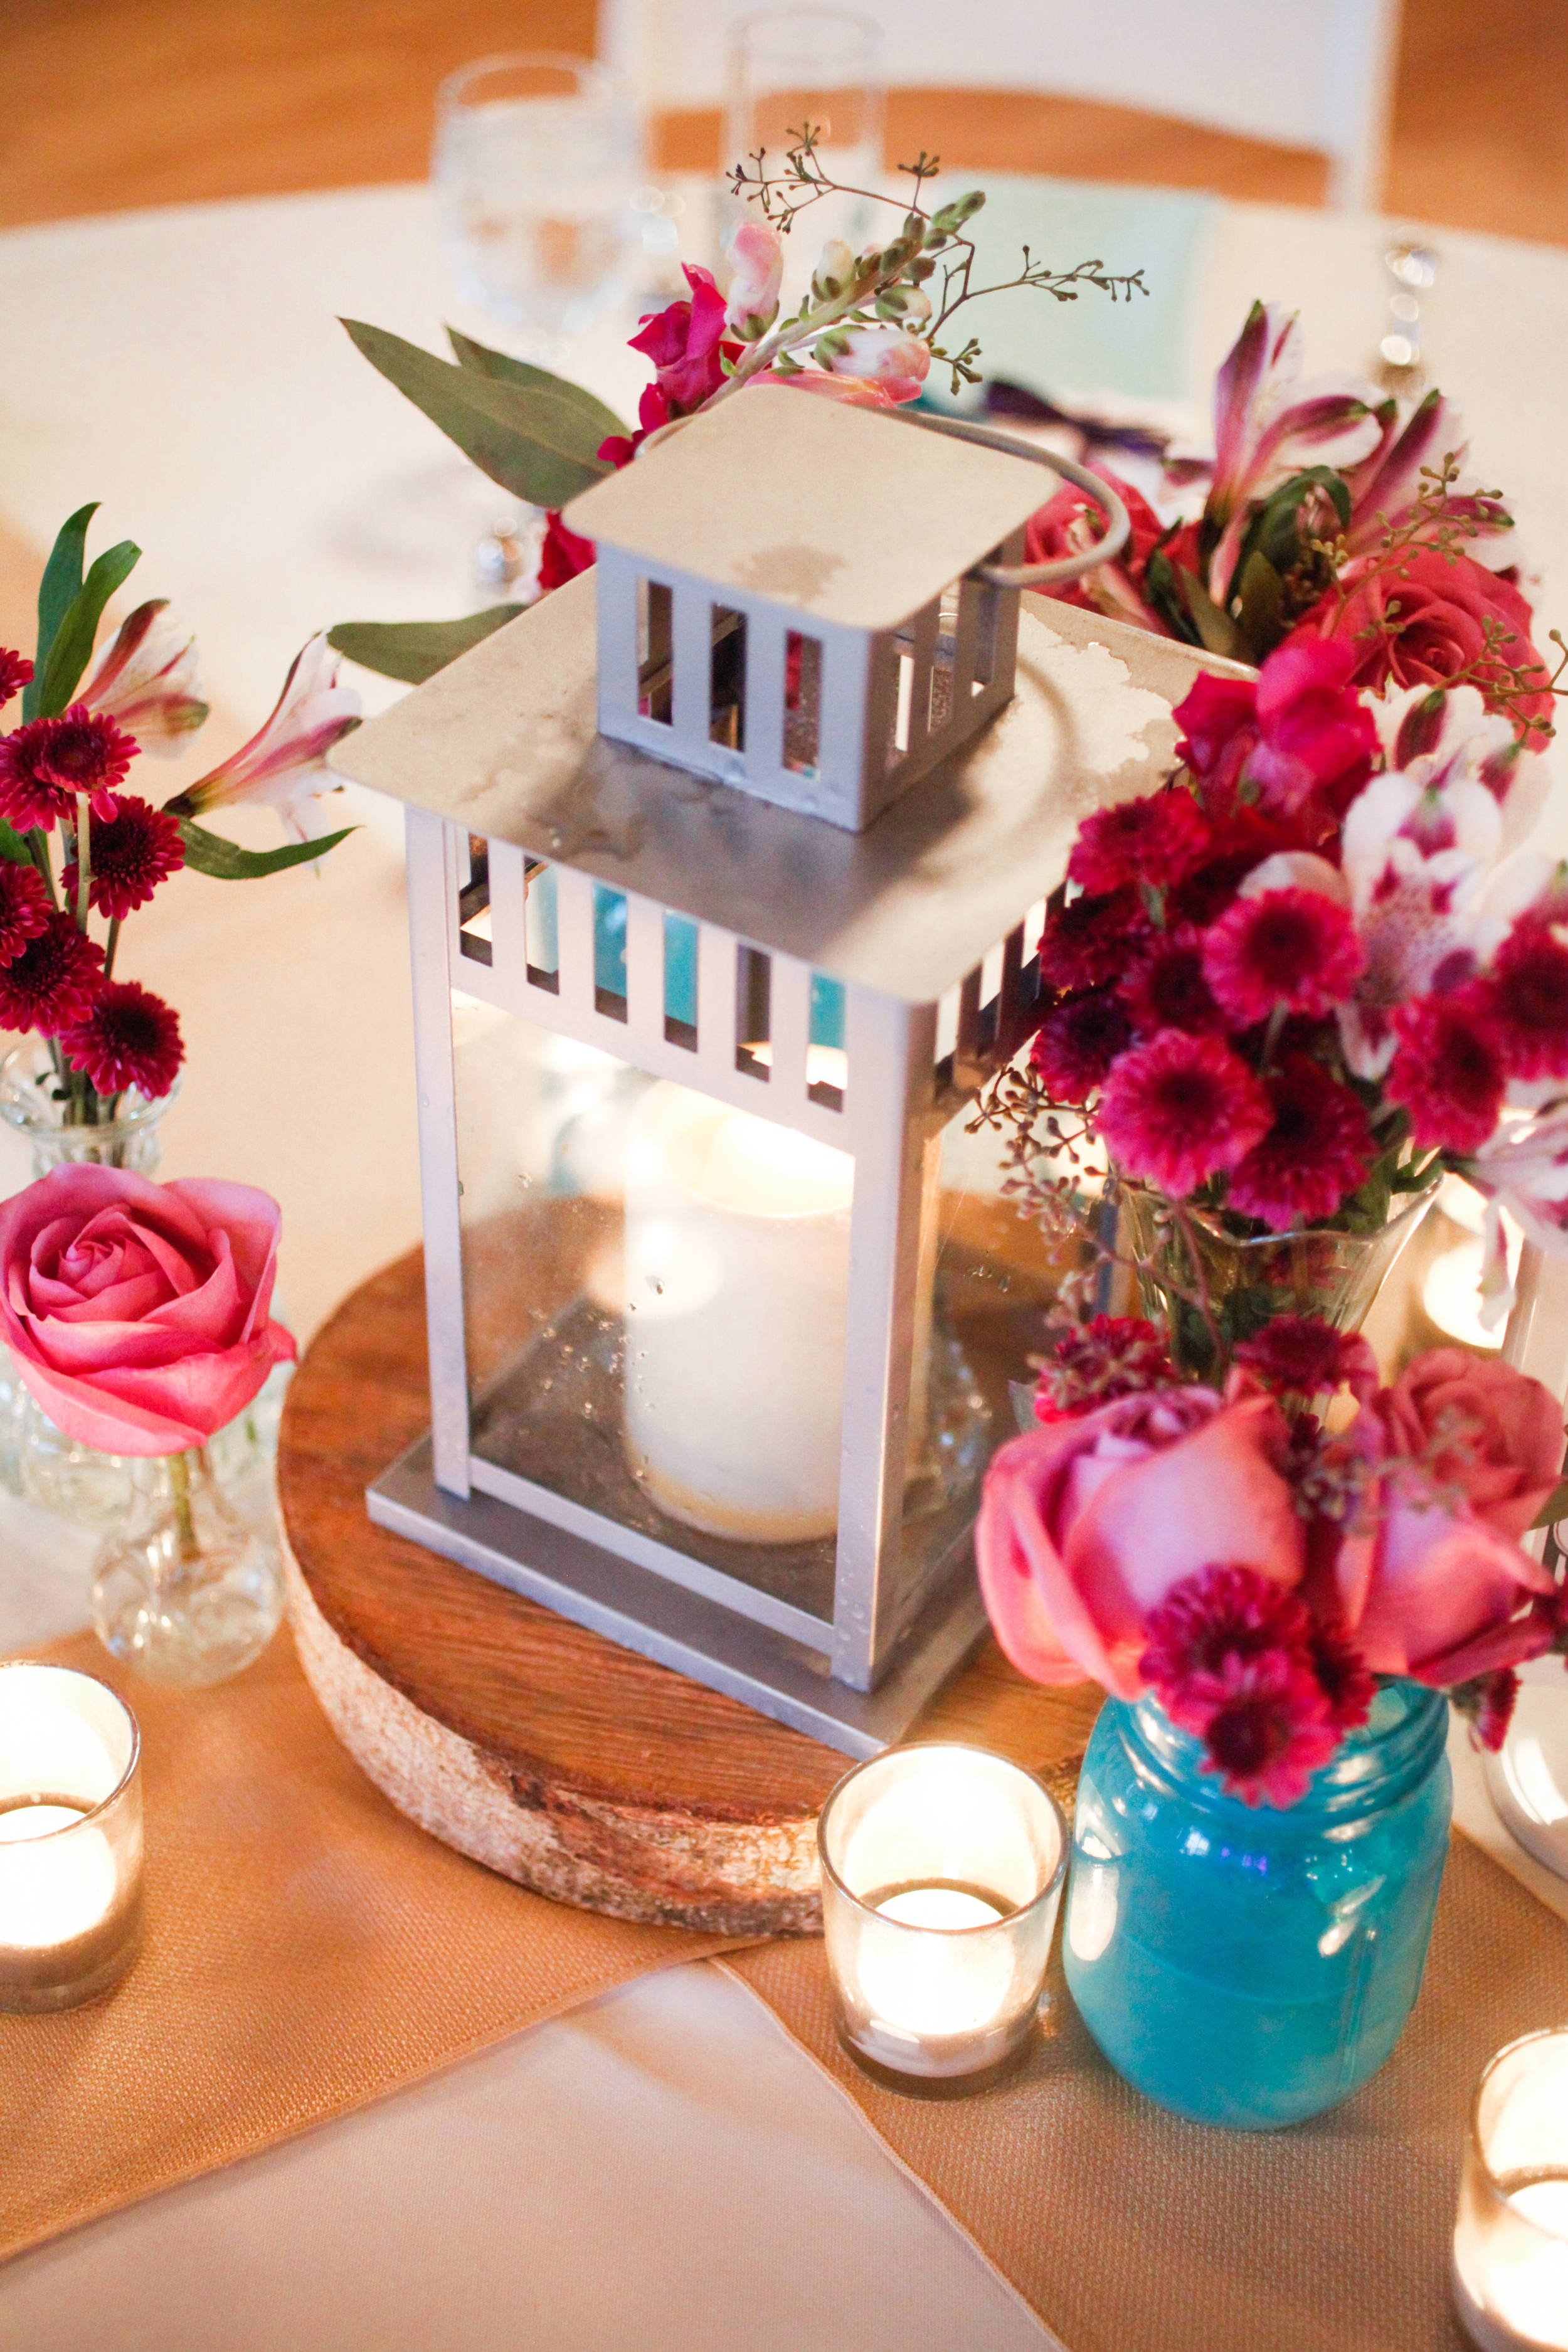 Centerpieces of silver lanterns were accented by mason jars, bud vases, & mercury glass votives.